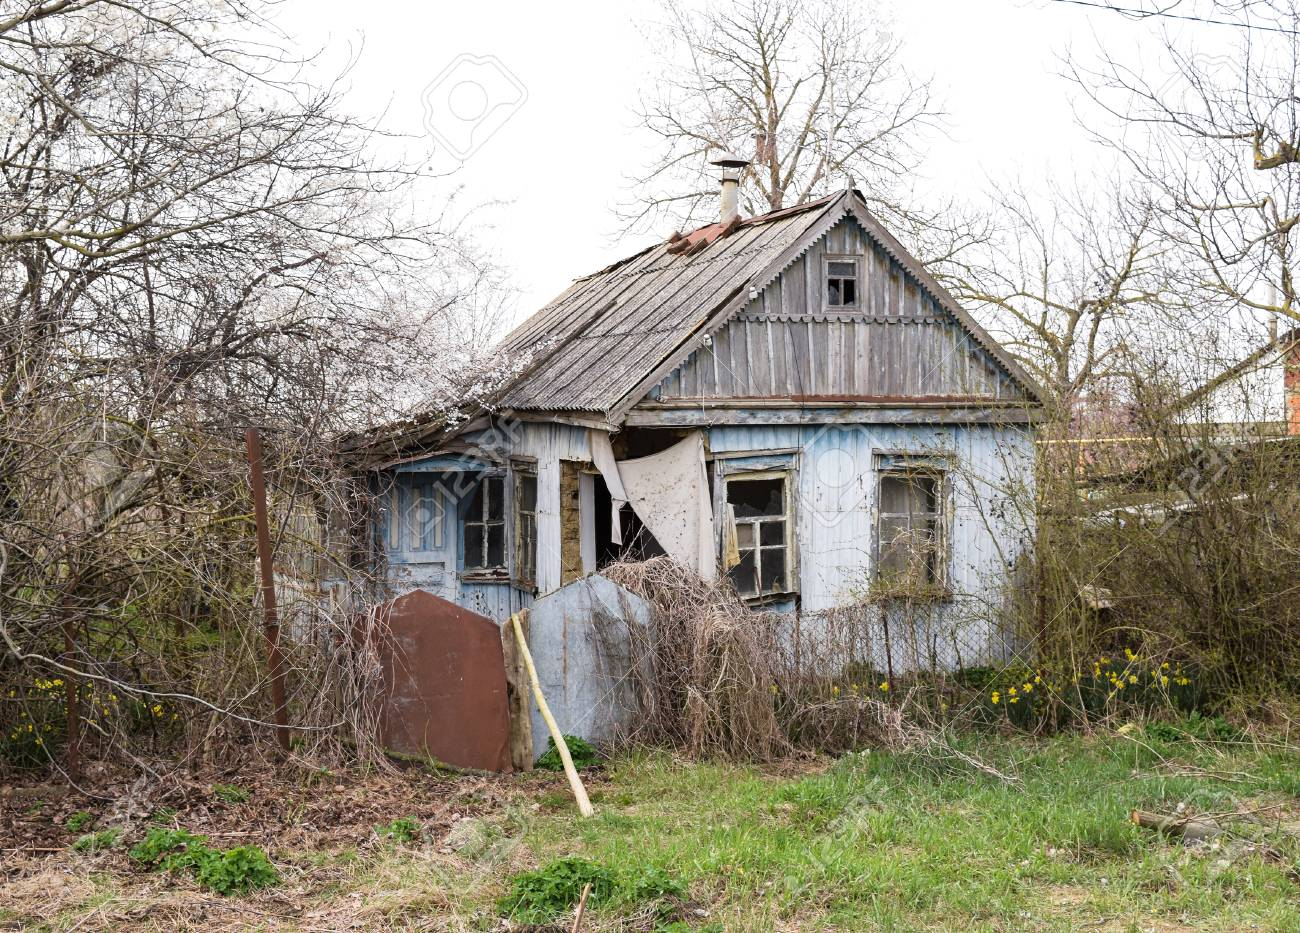 how to describe an old abandoned house